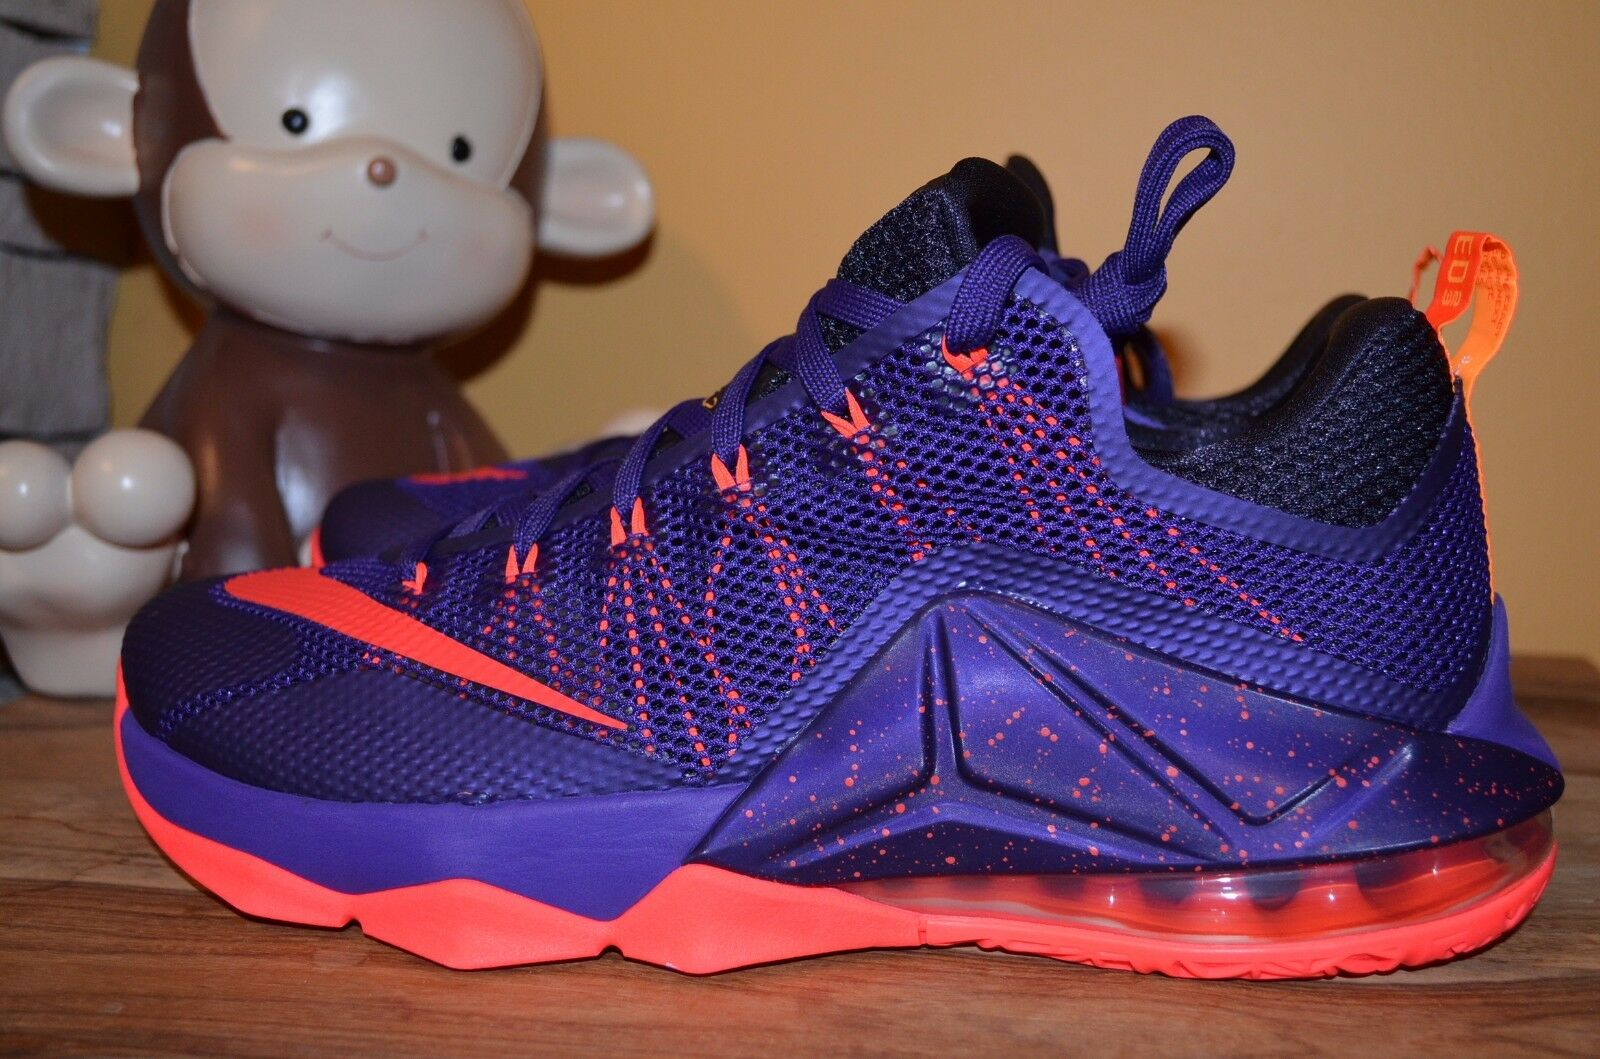 Nuove nike lebron 12 xii basso basso xii 6d4102